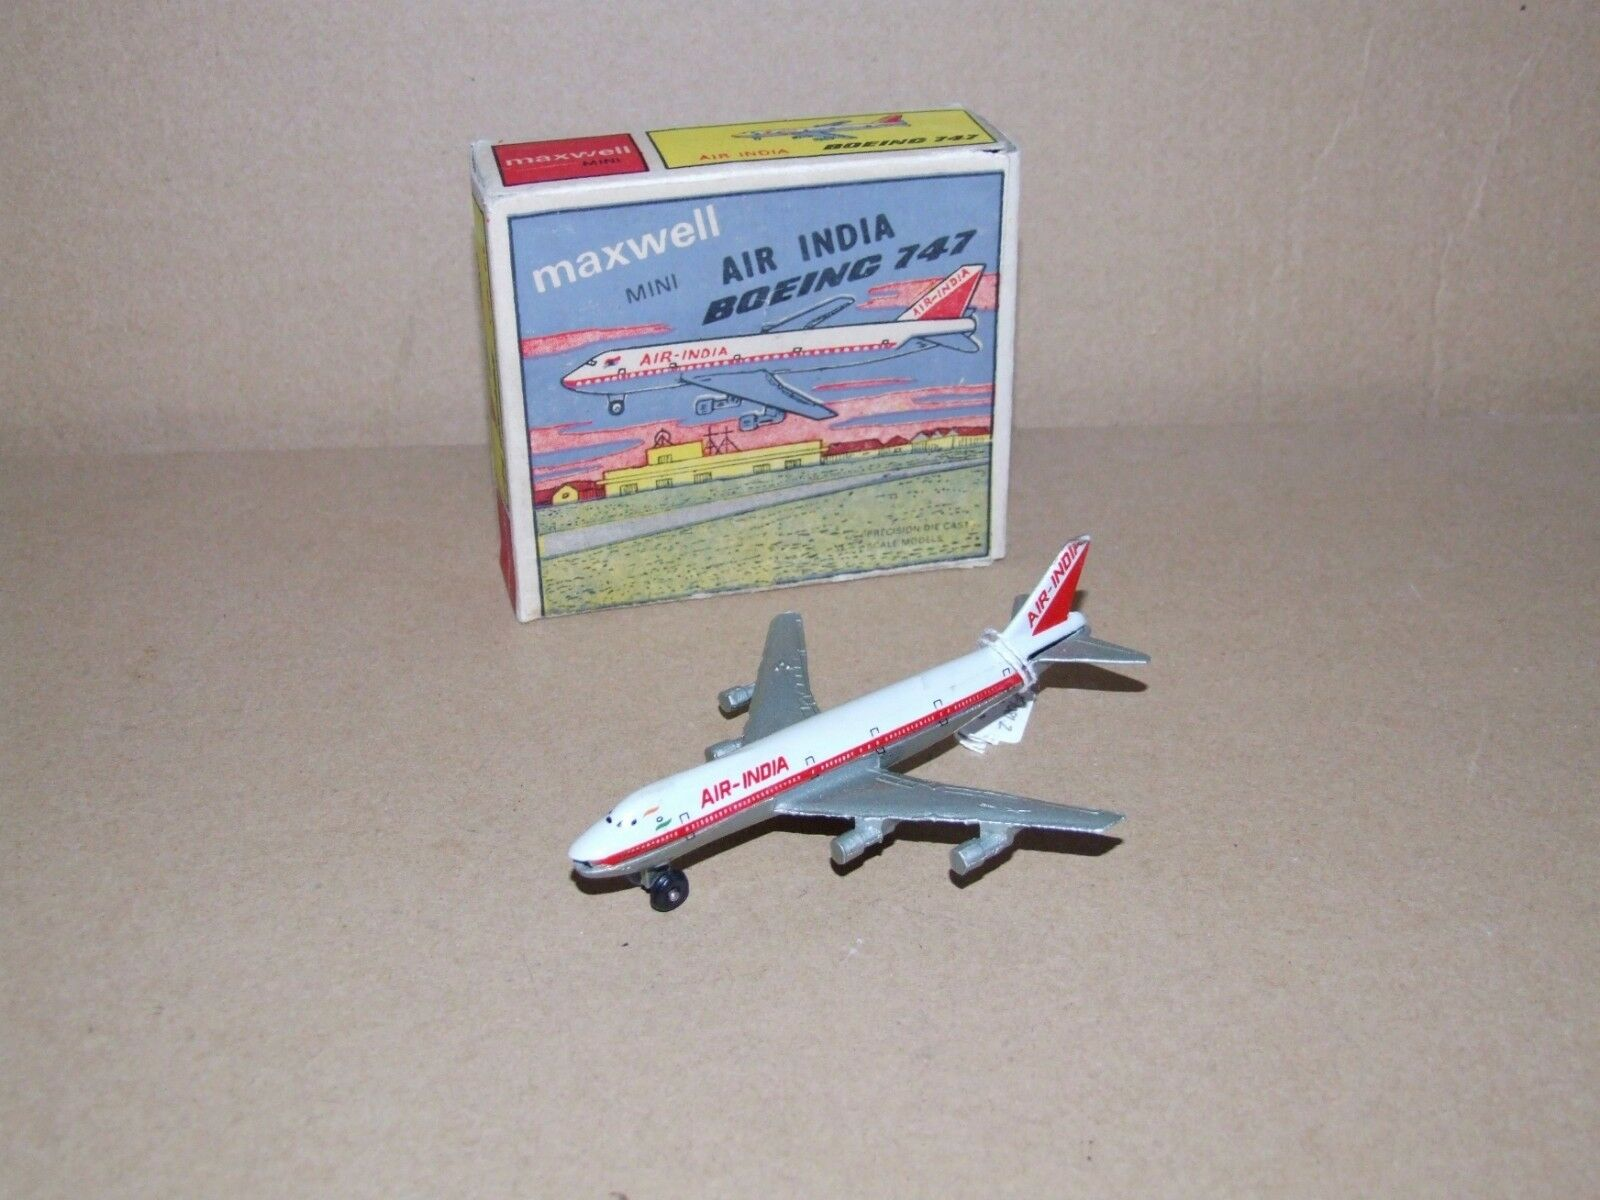 Maxwell (India) AIR INDIA Boeing 747